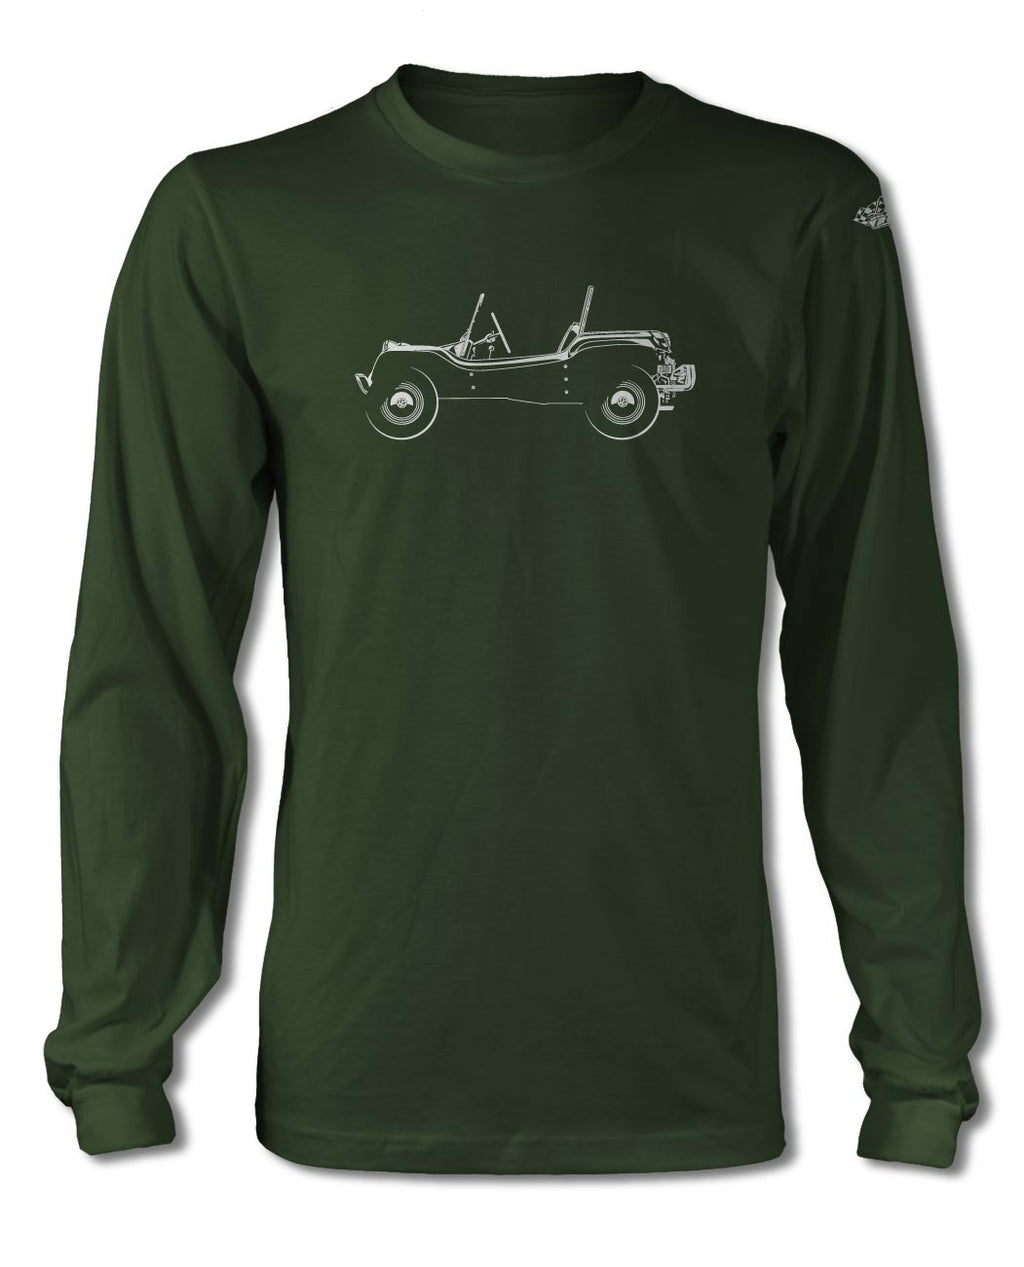 1964 Meyers Manx Buggy VW T-Shirt - Long Sleeves - Side View